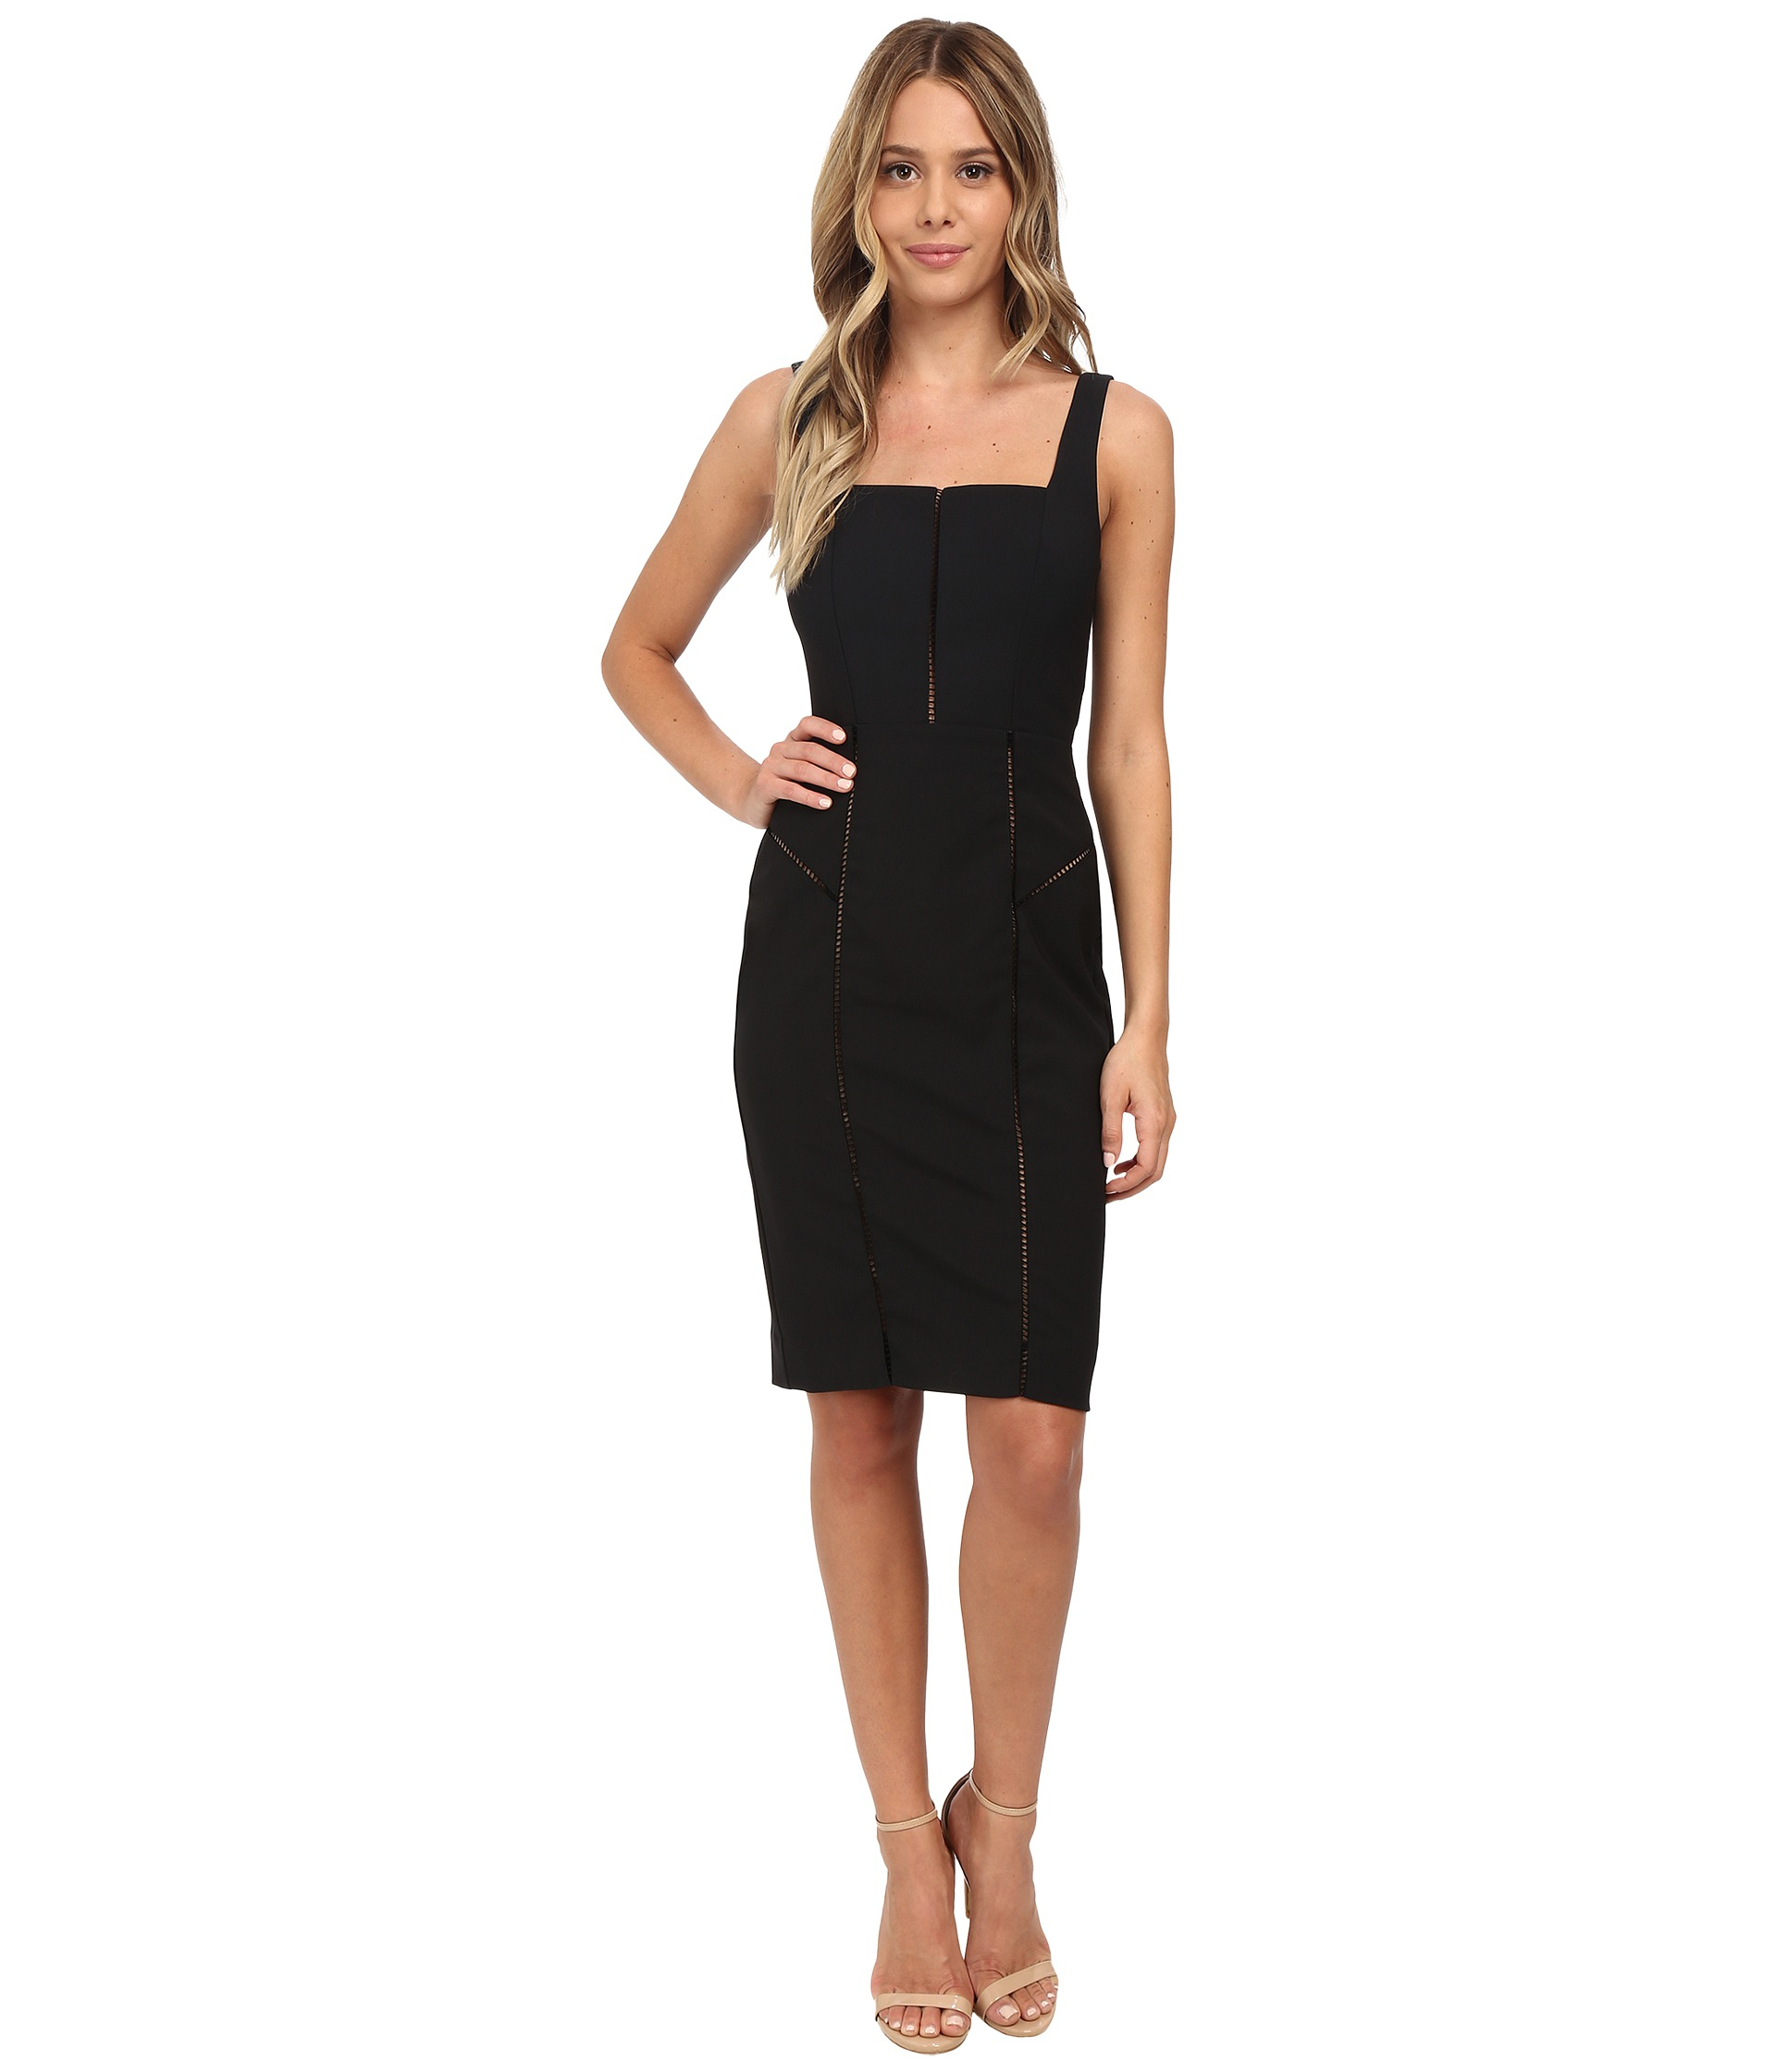 1dfe293d162265 Gallery. Previously sold at: Zappos · Women's Black Cocktail Dresses